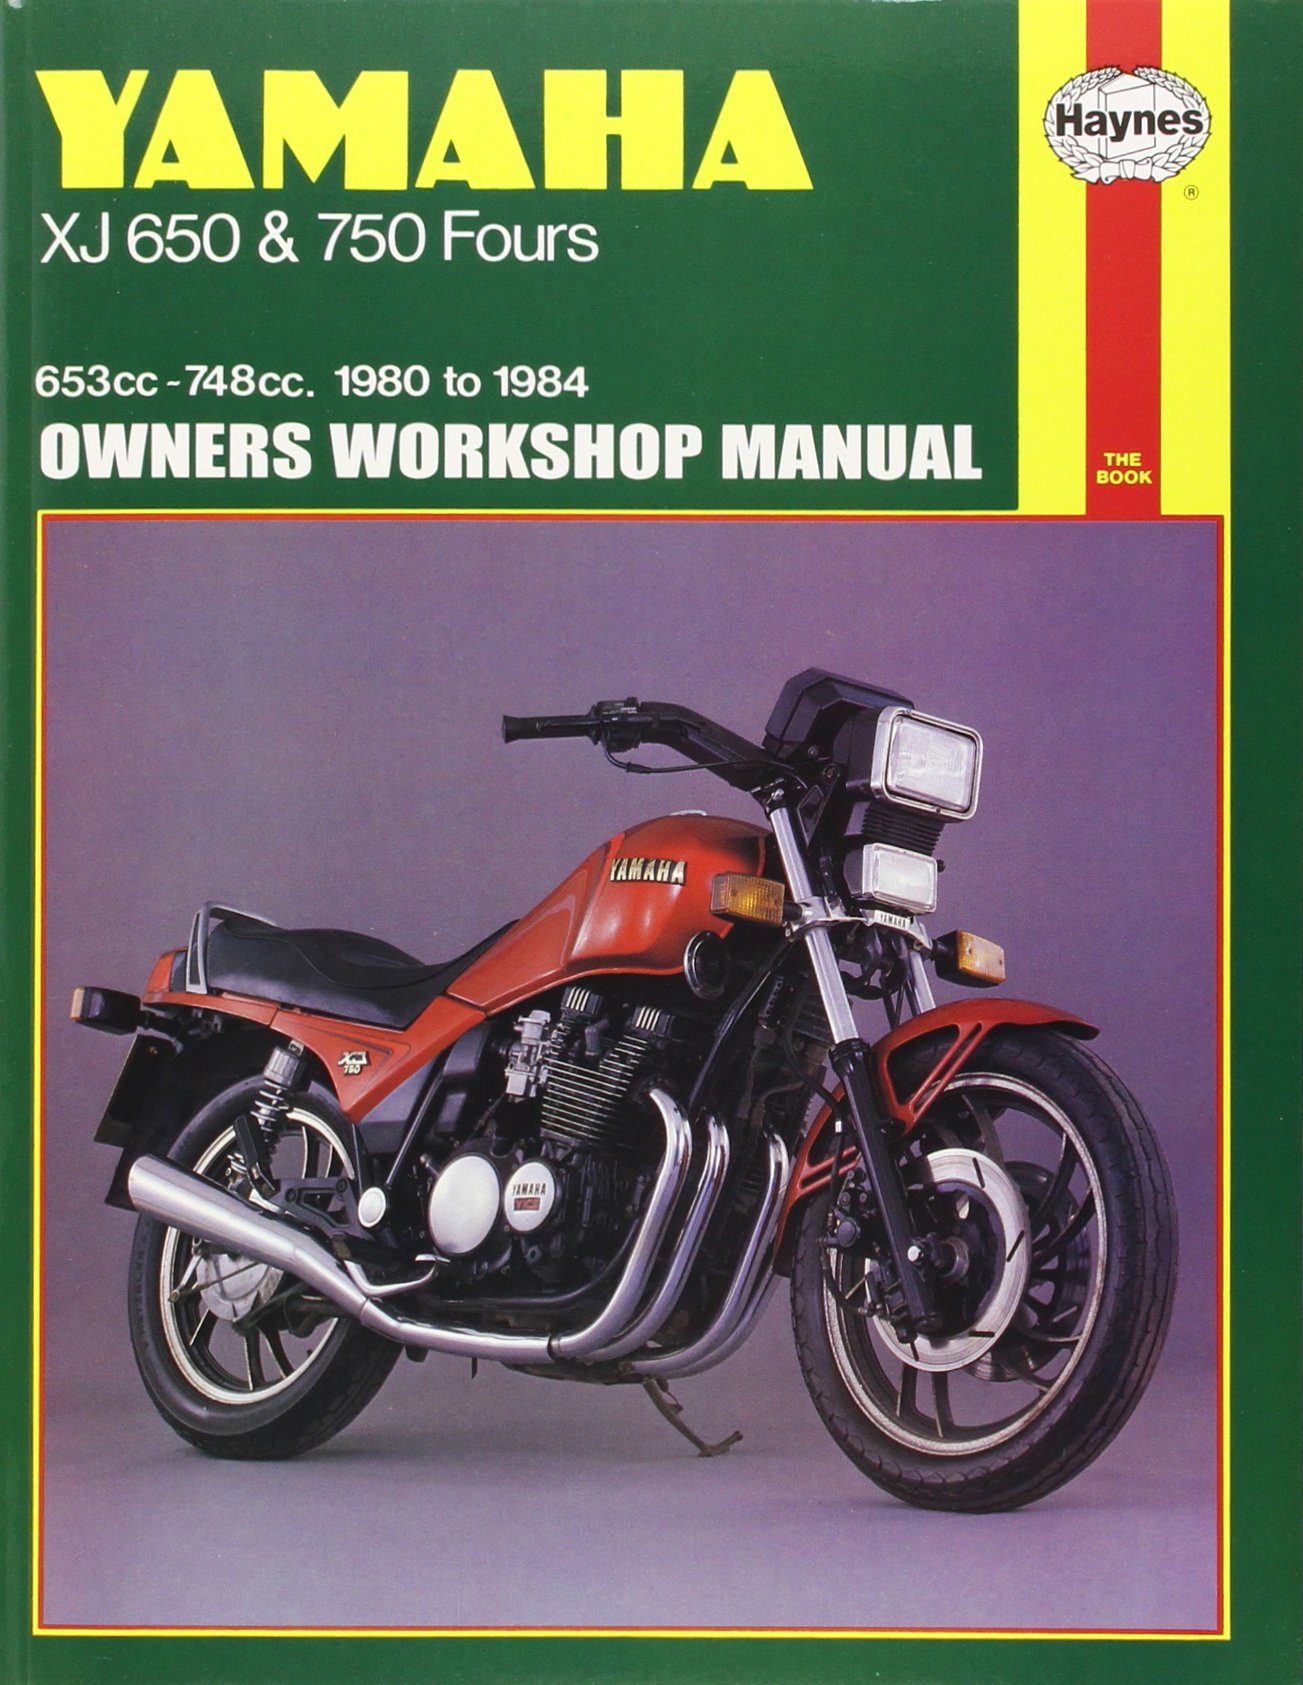 Yamaha Xj 650 And 750 Fours Owners Workshop Manual No M738 80 1983 Xj550 Wiring Diagram 84 John Haynes 9781850103530 Books